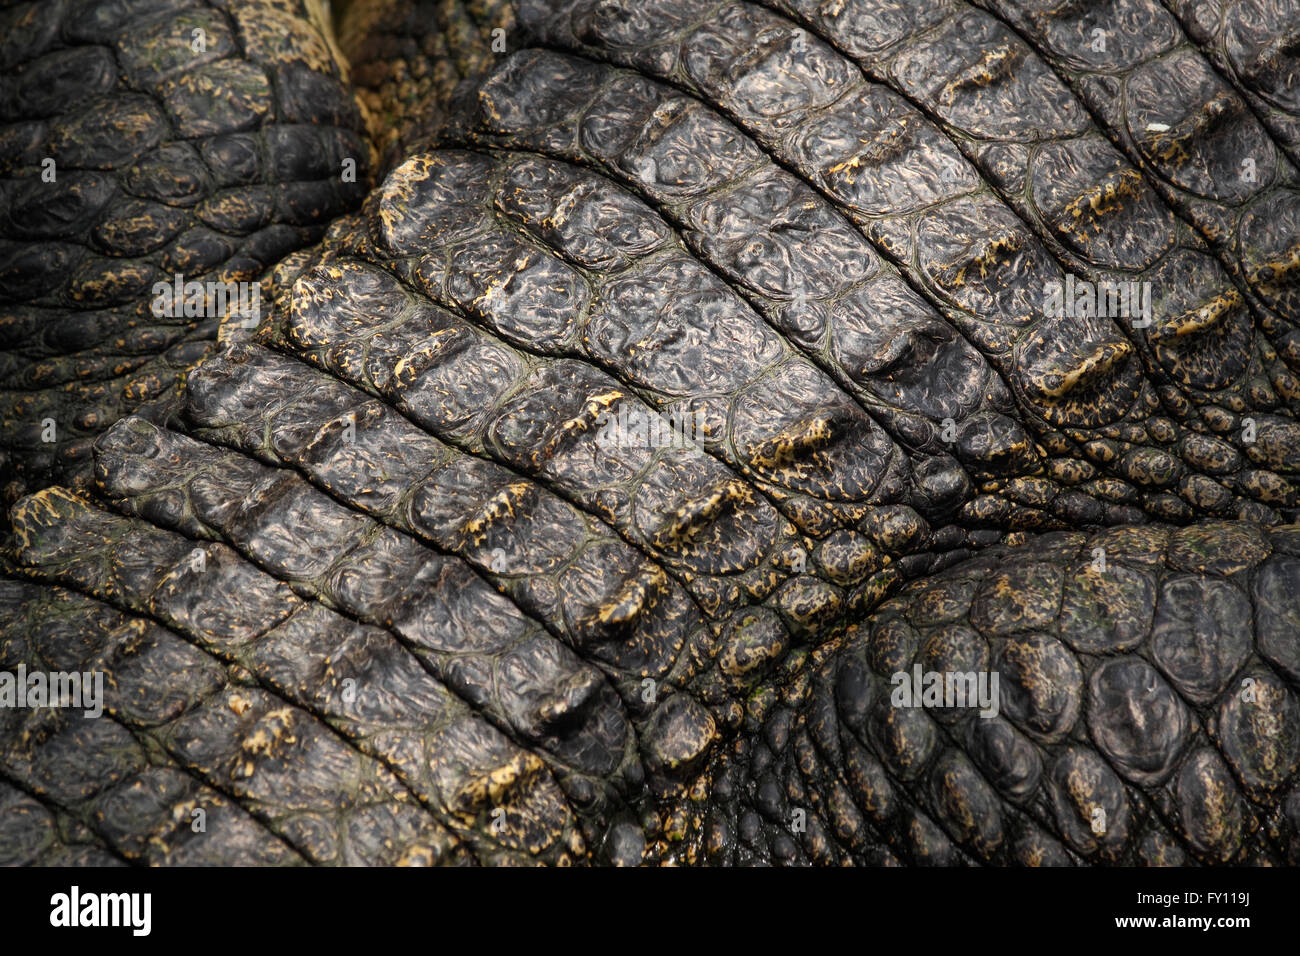 Crocodile skin detail - Stock Image